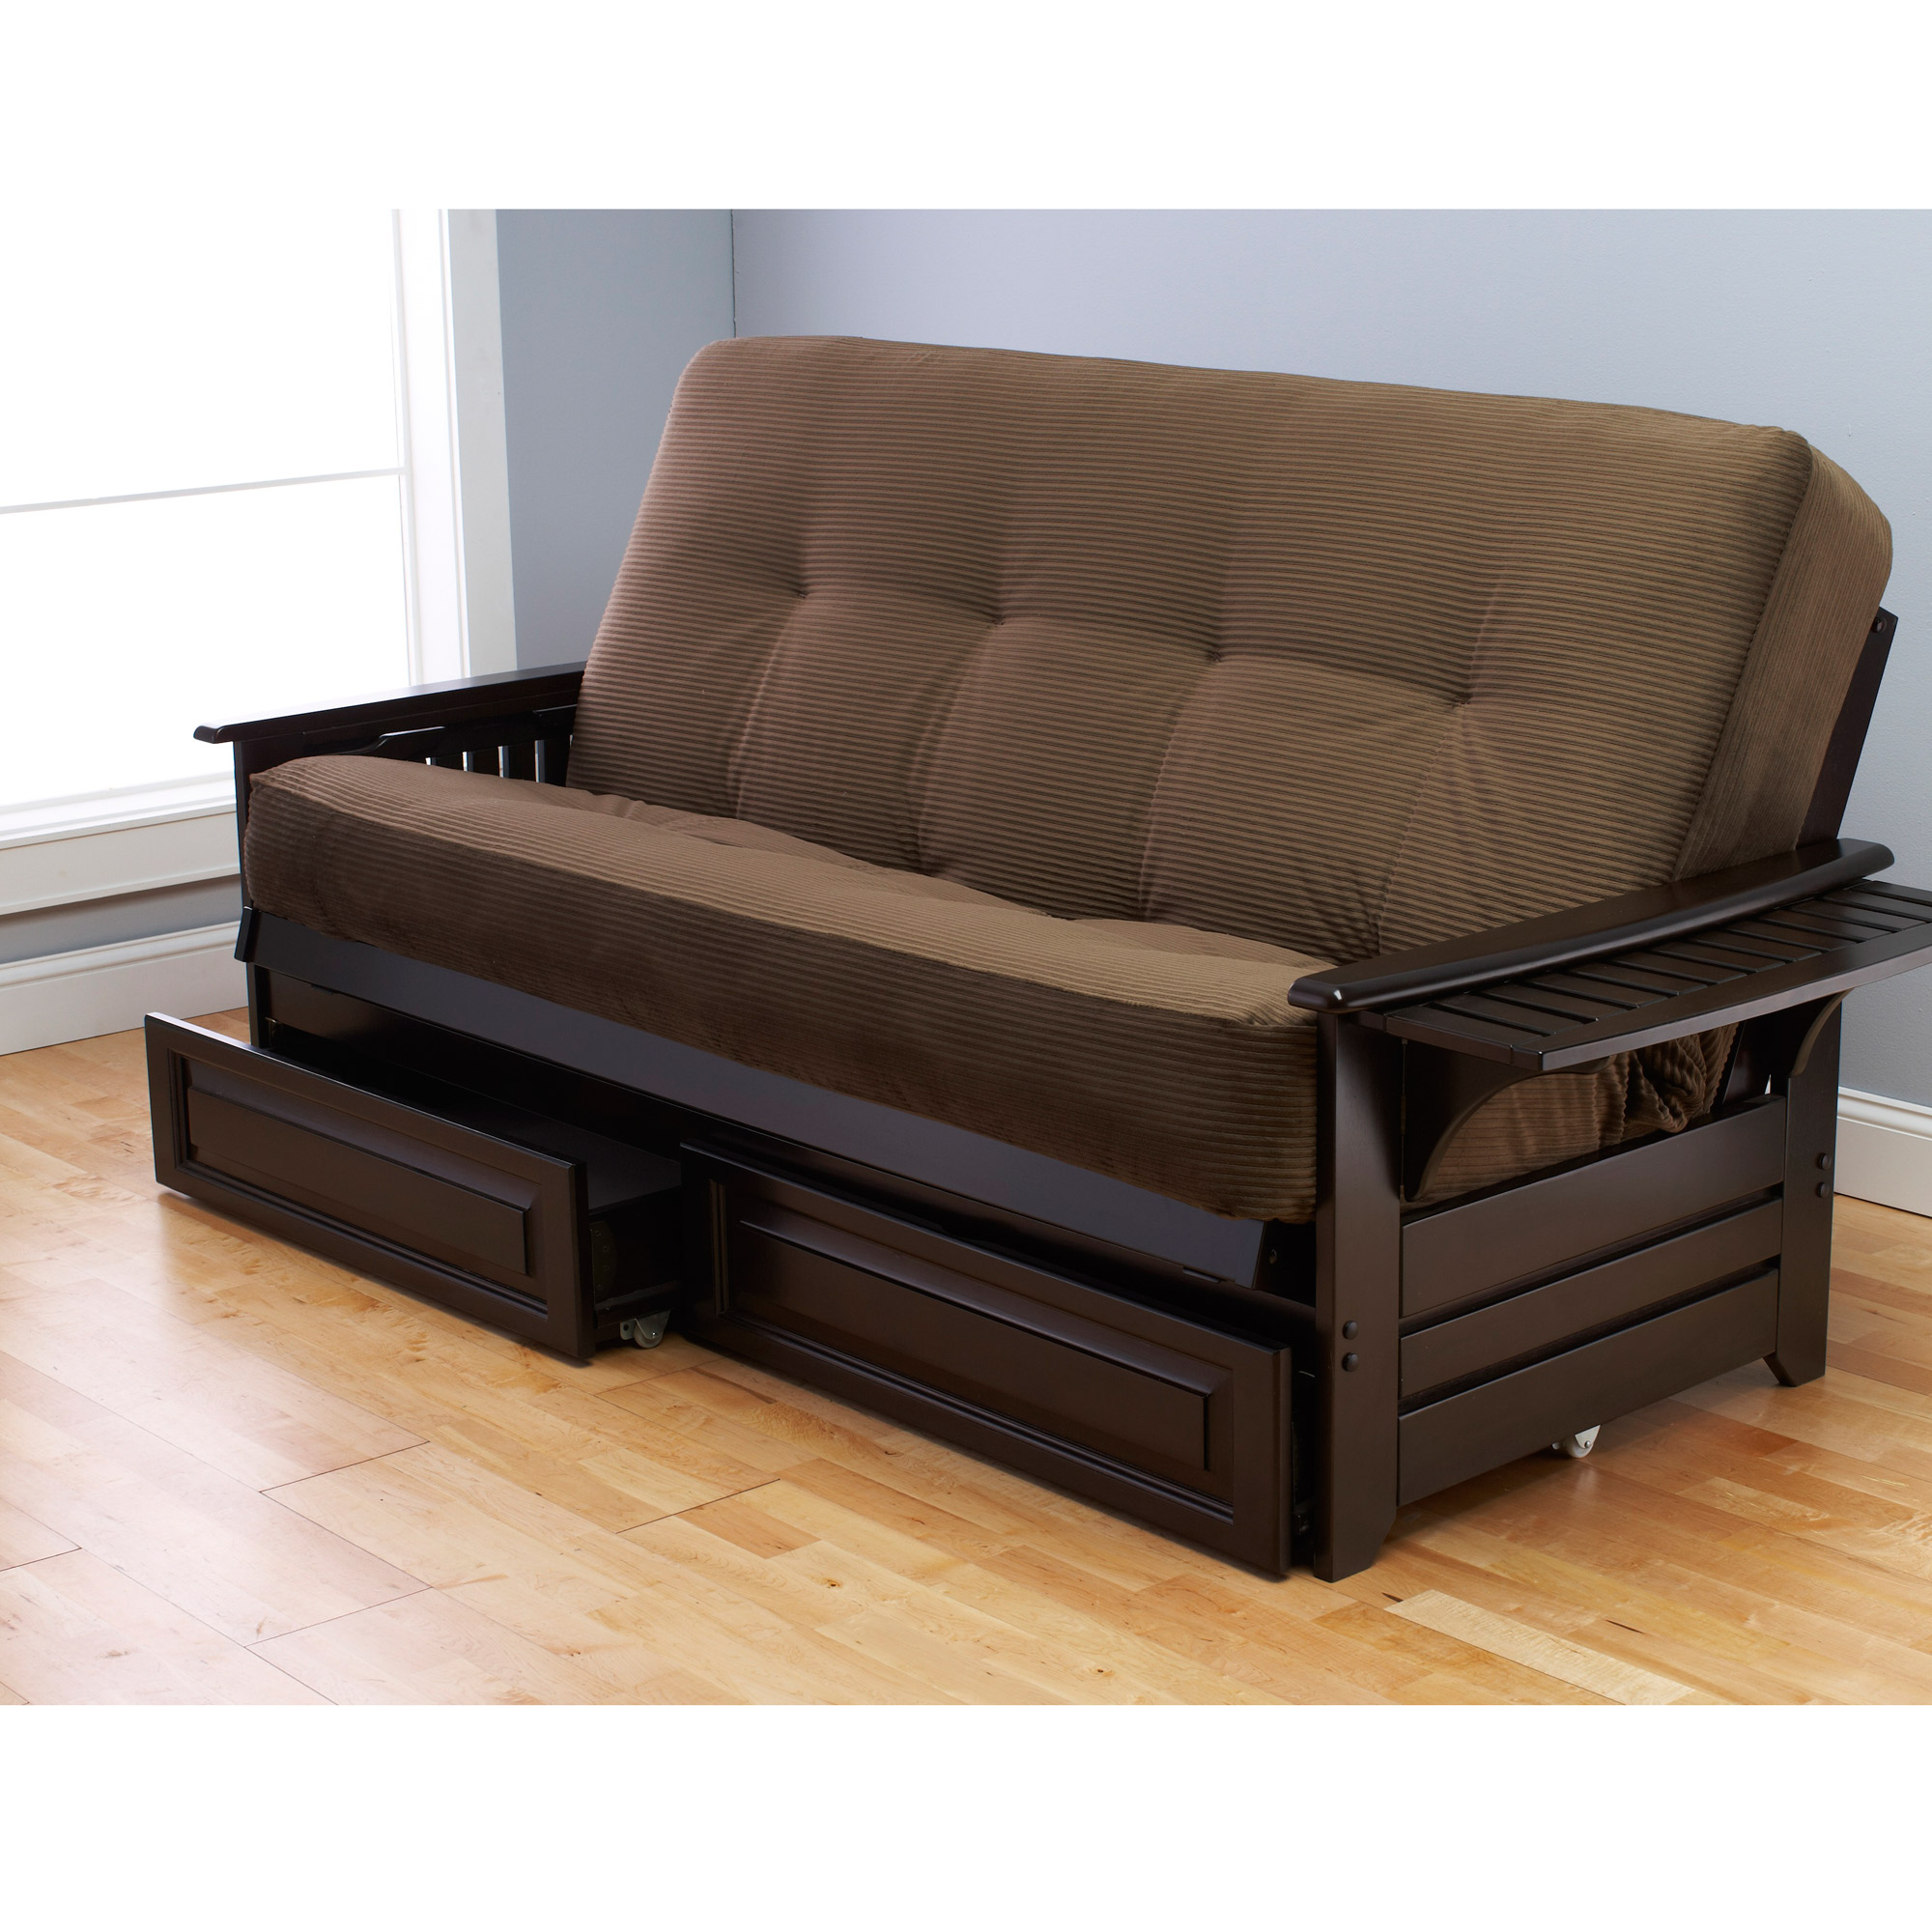 Most fortable Futons